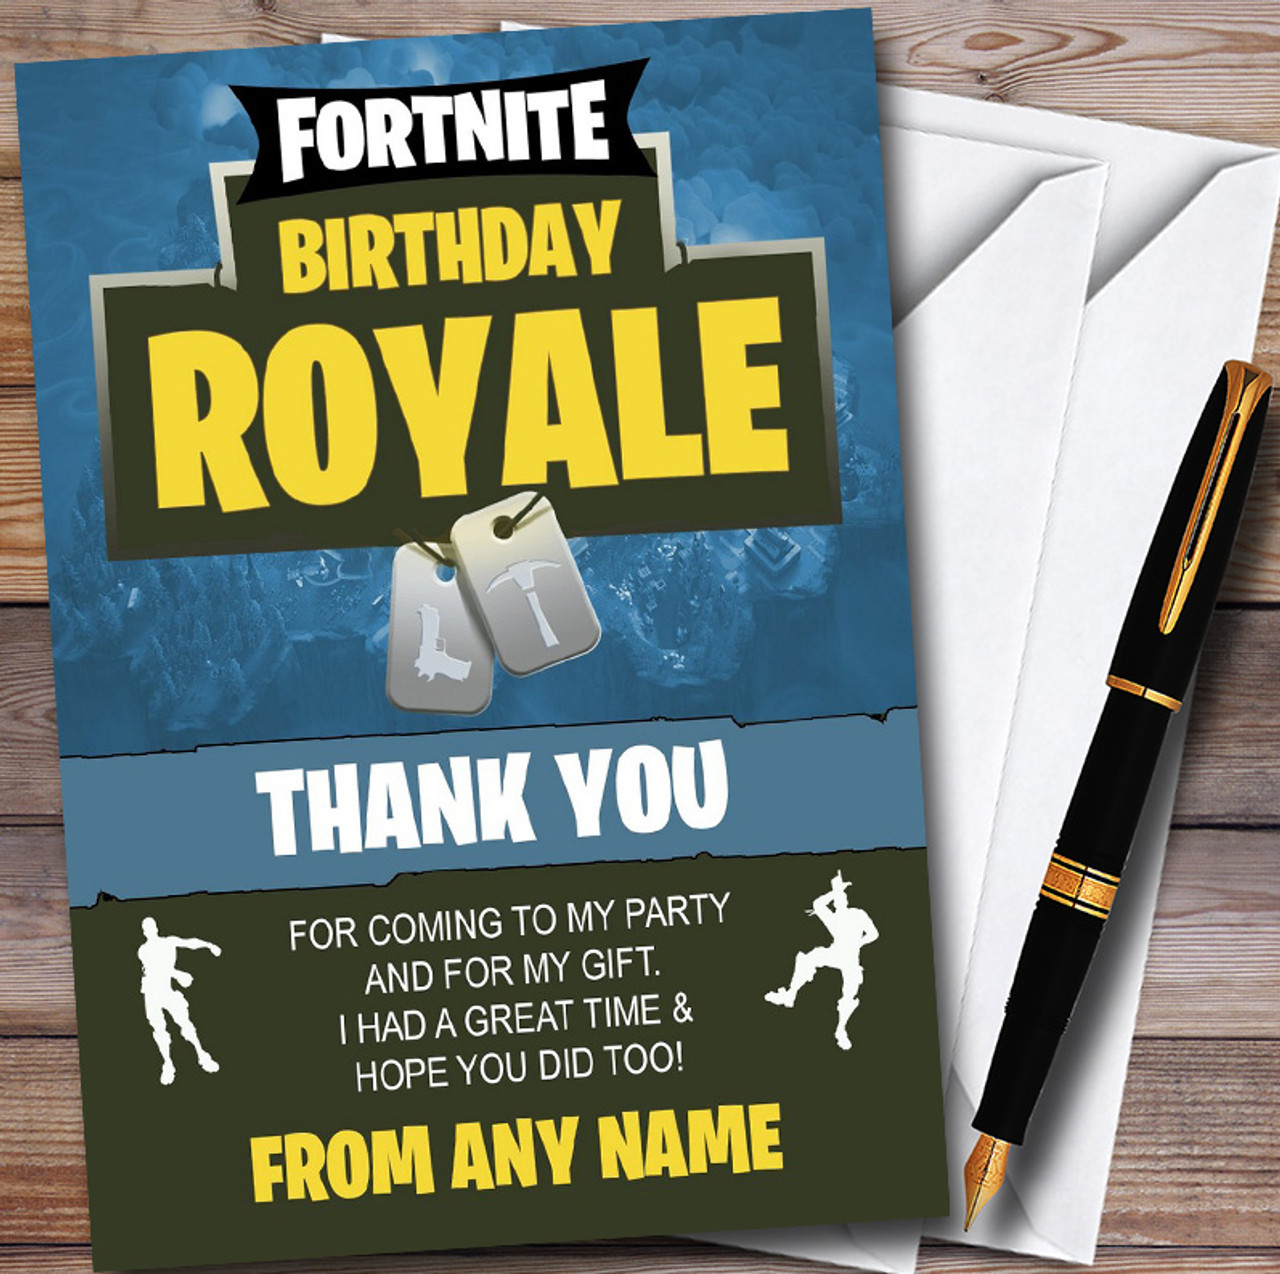 Fortnite Birthday Royale Personalized Children S Birthday